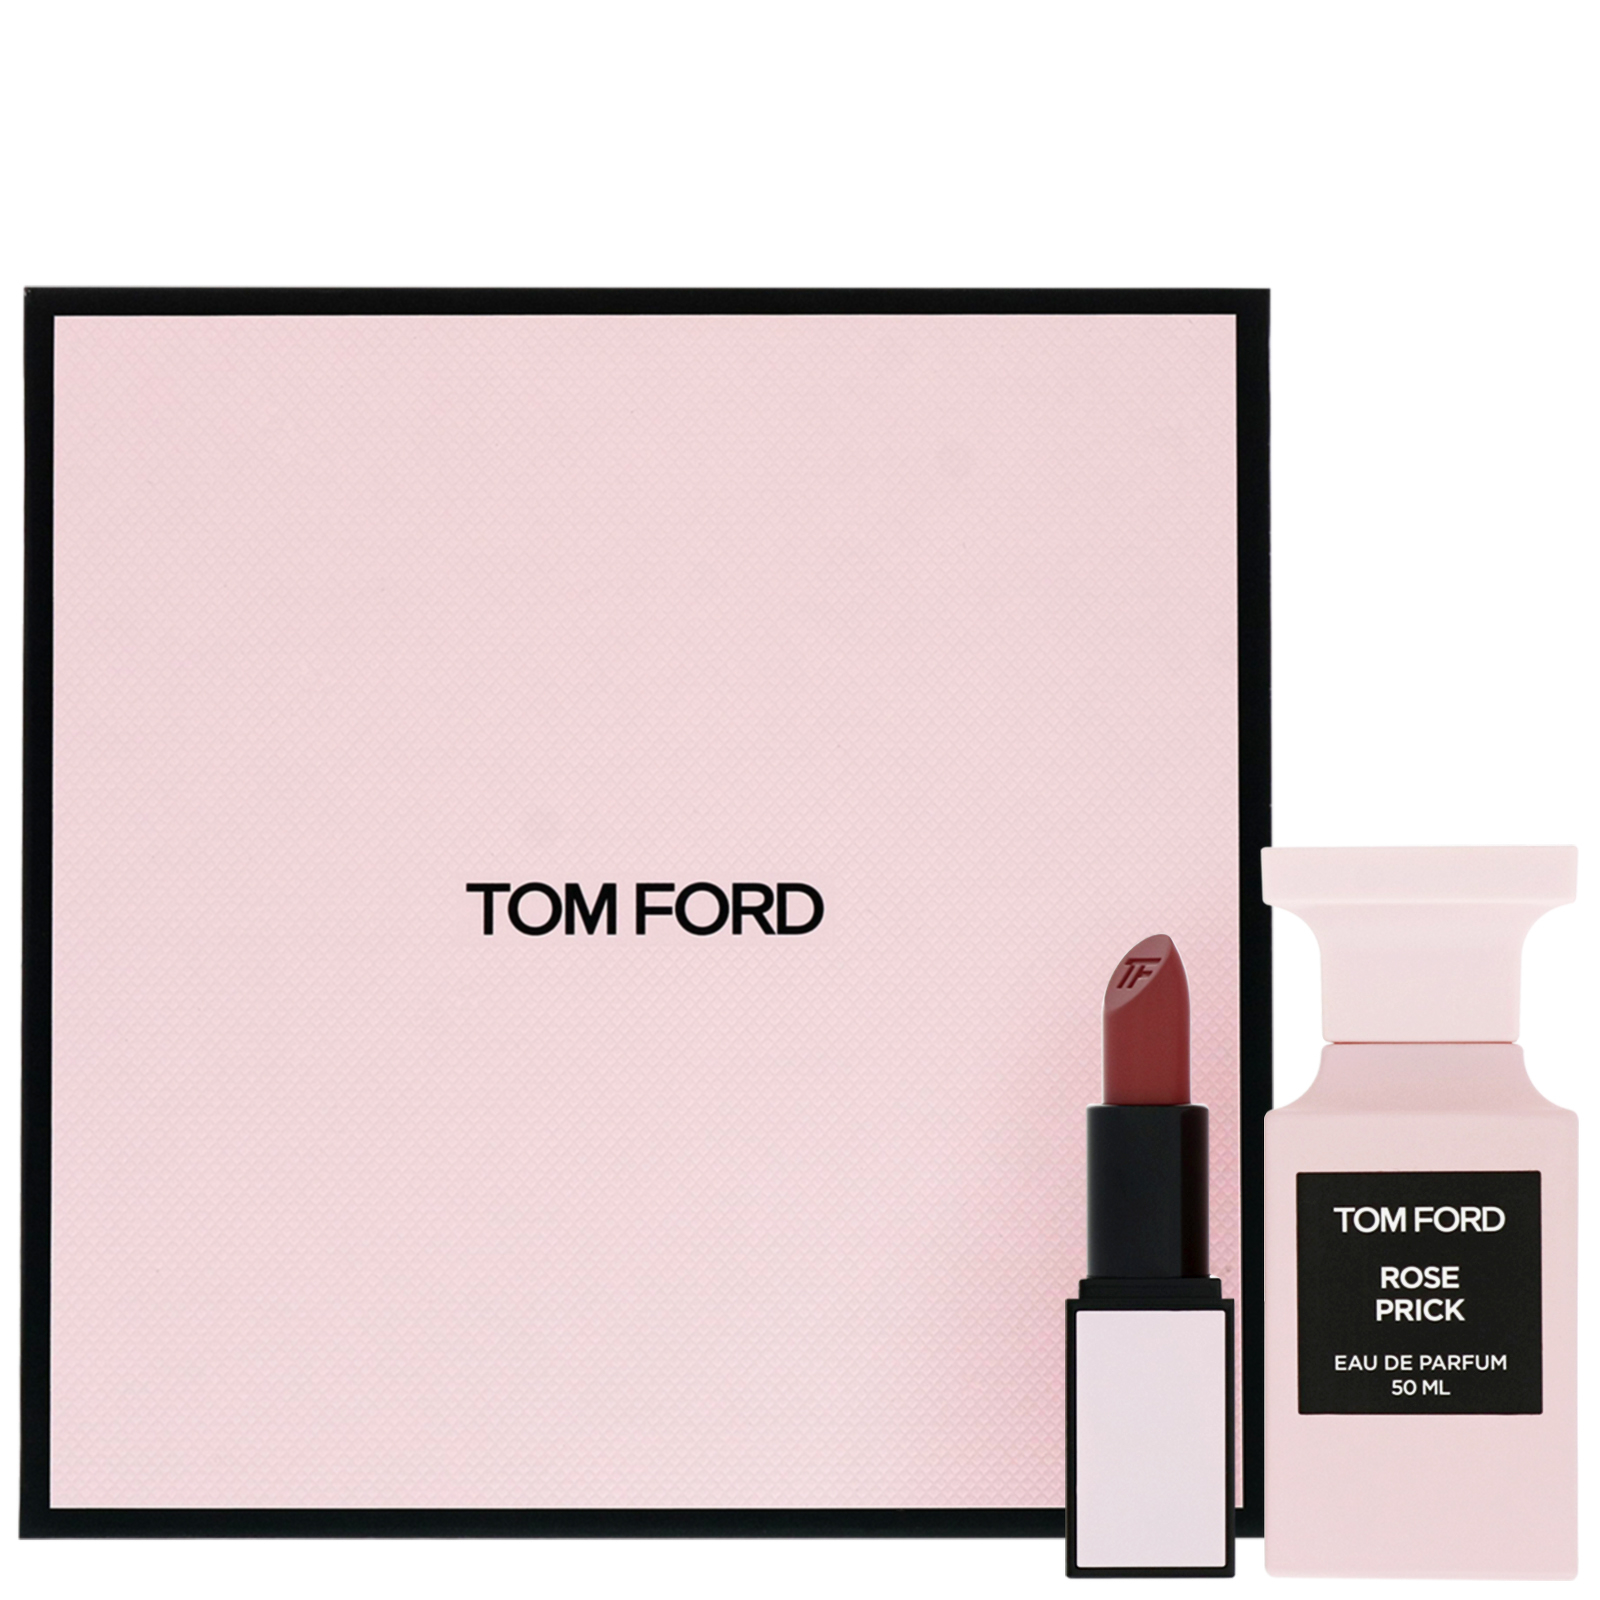 Tom Ford Rose Prick Eau de Parfum Spray 50ml Gift Set